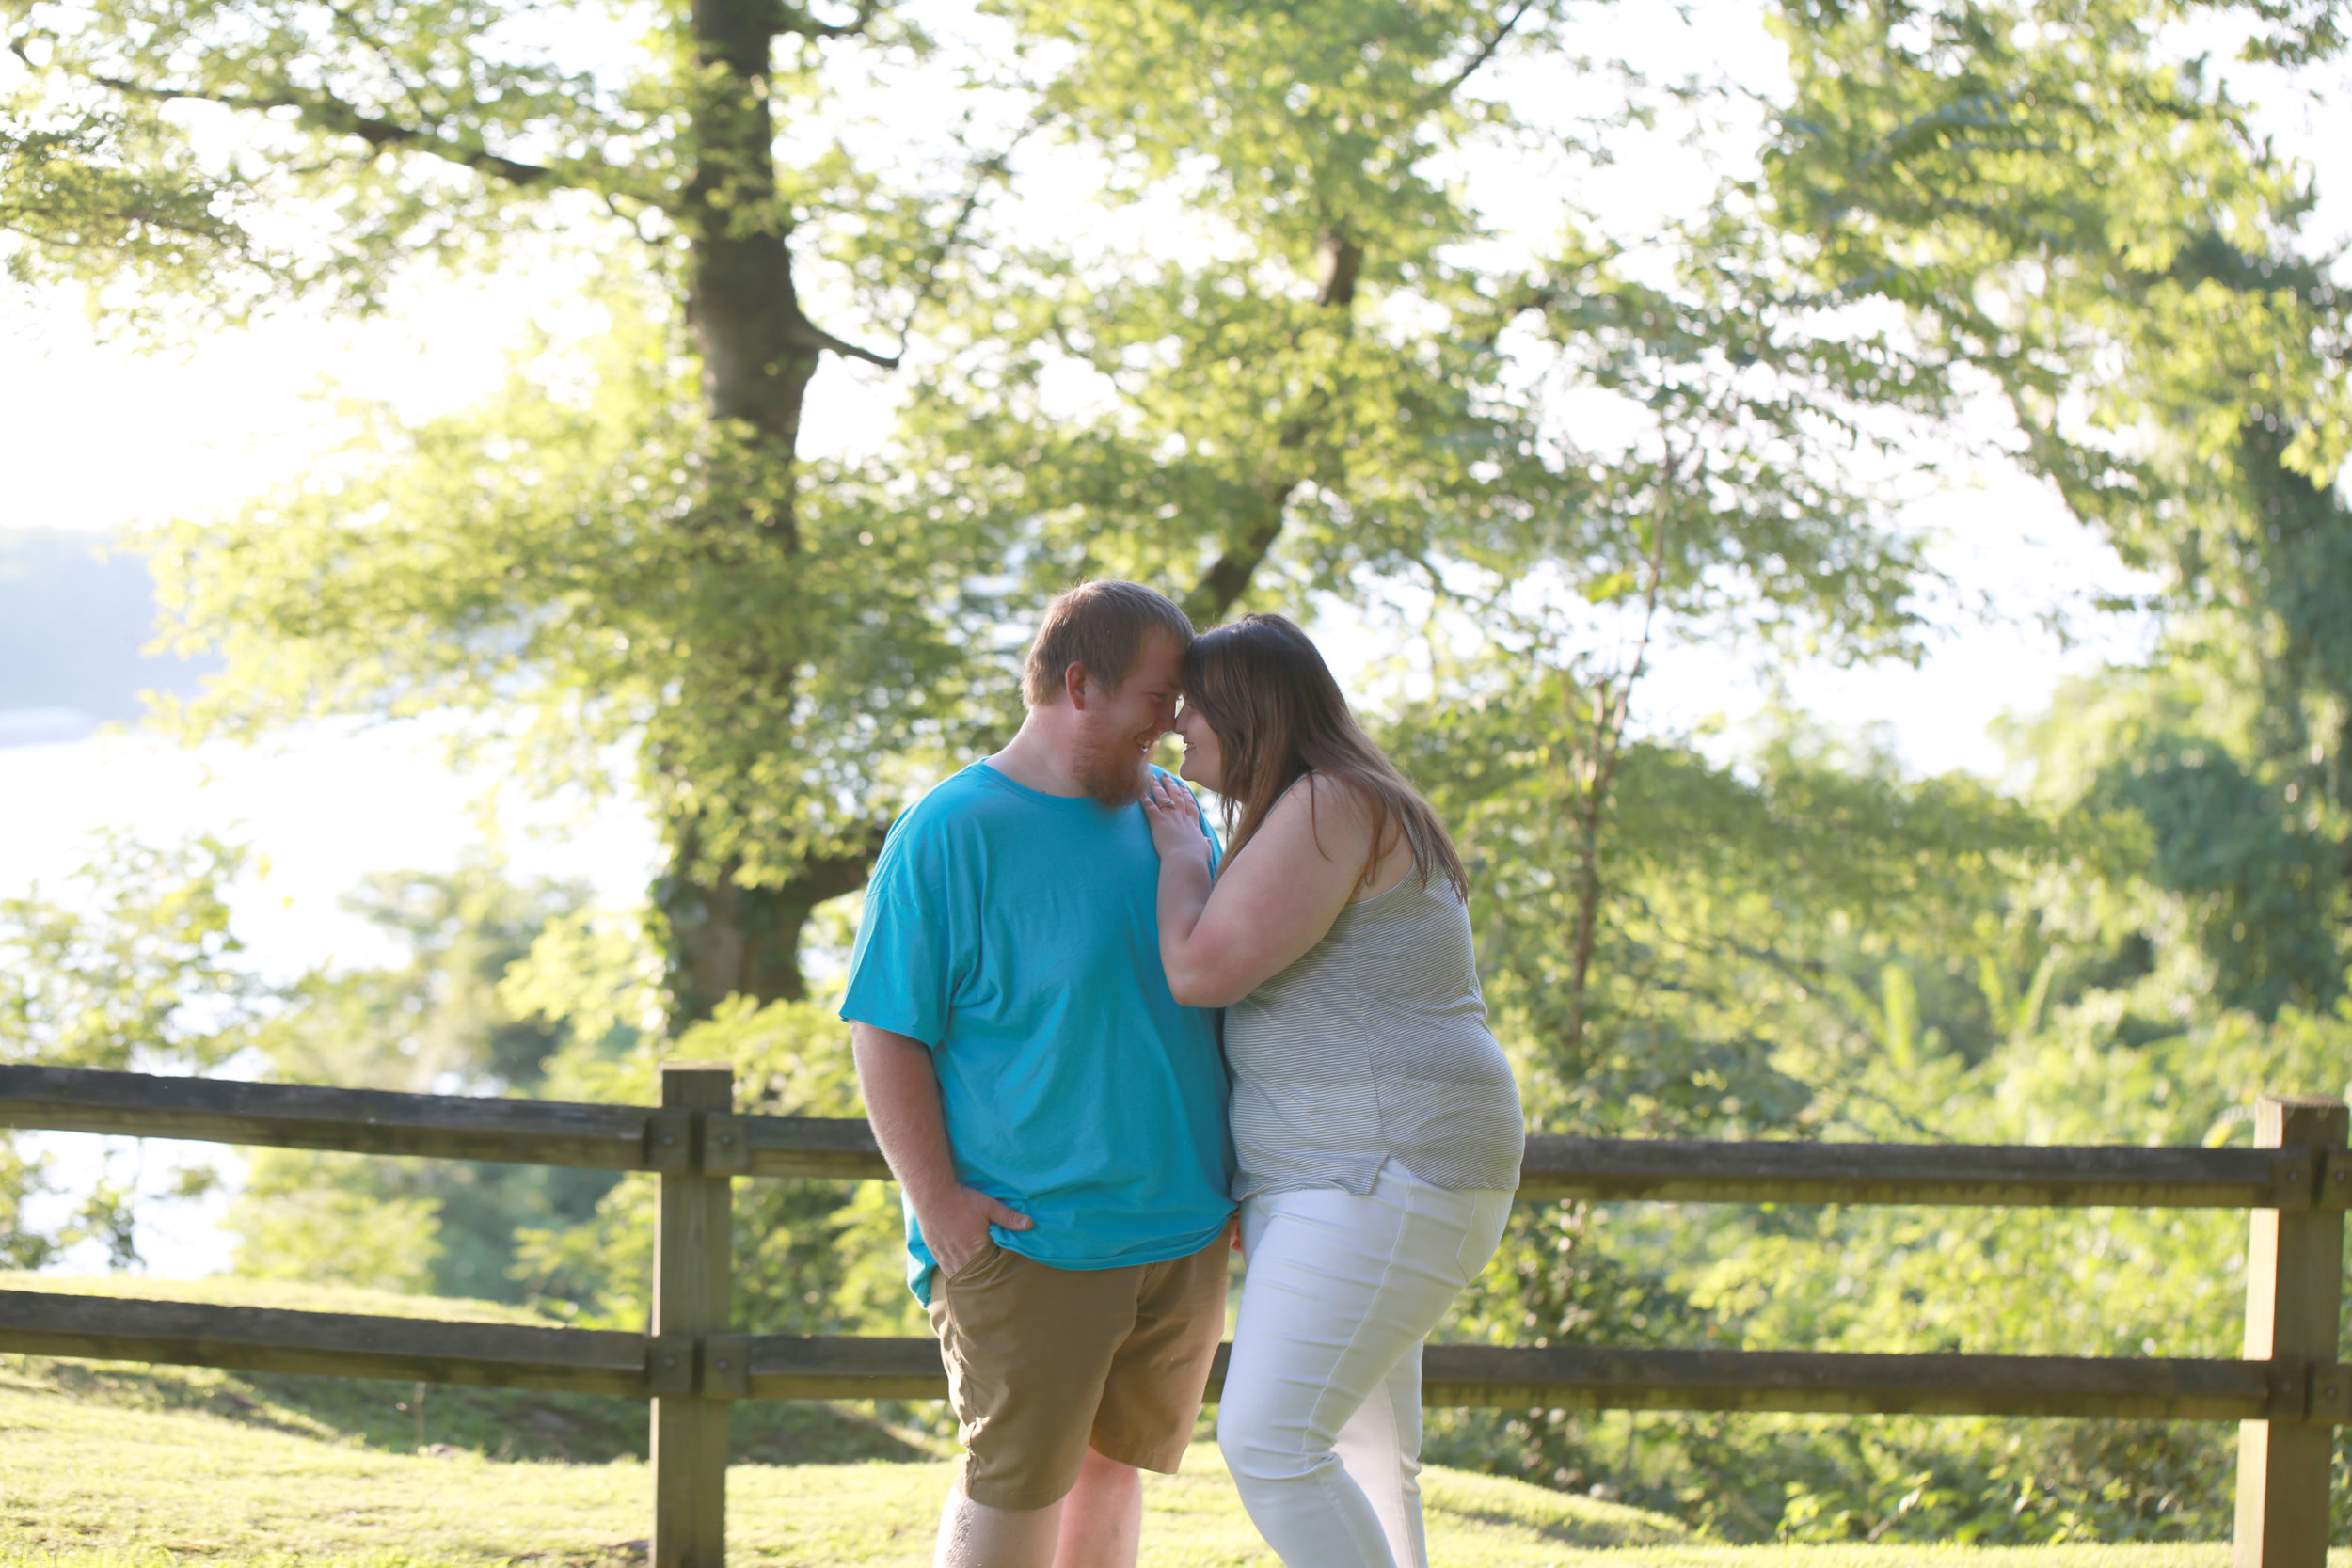 destite_jonathan_engagement_0105.jpg